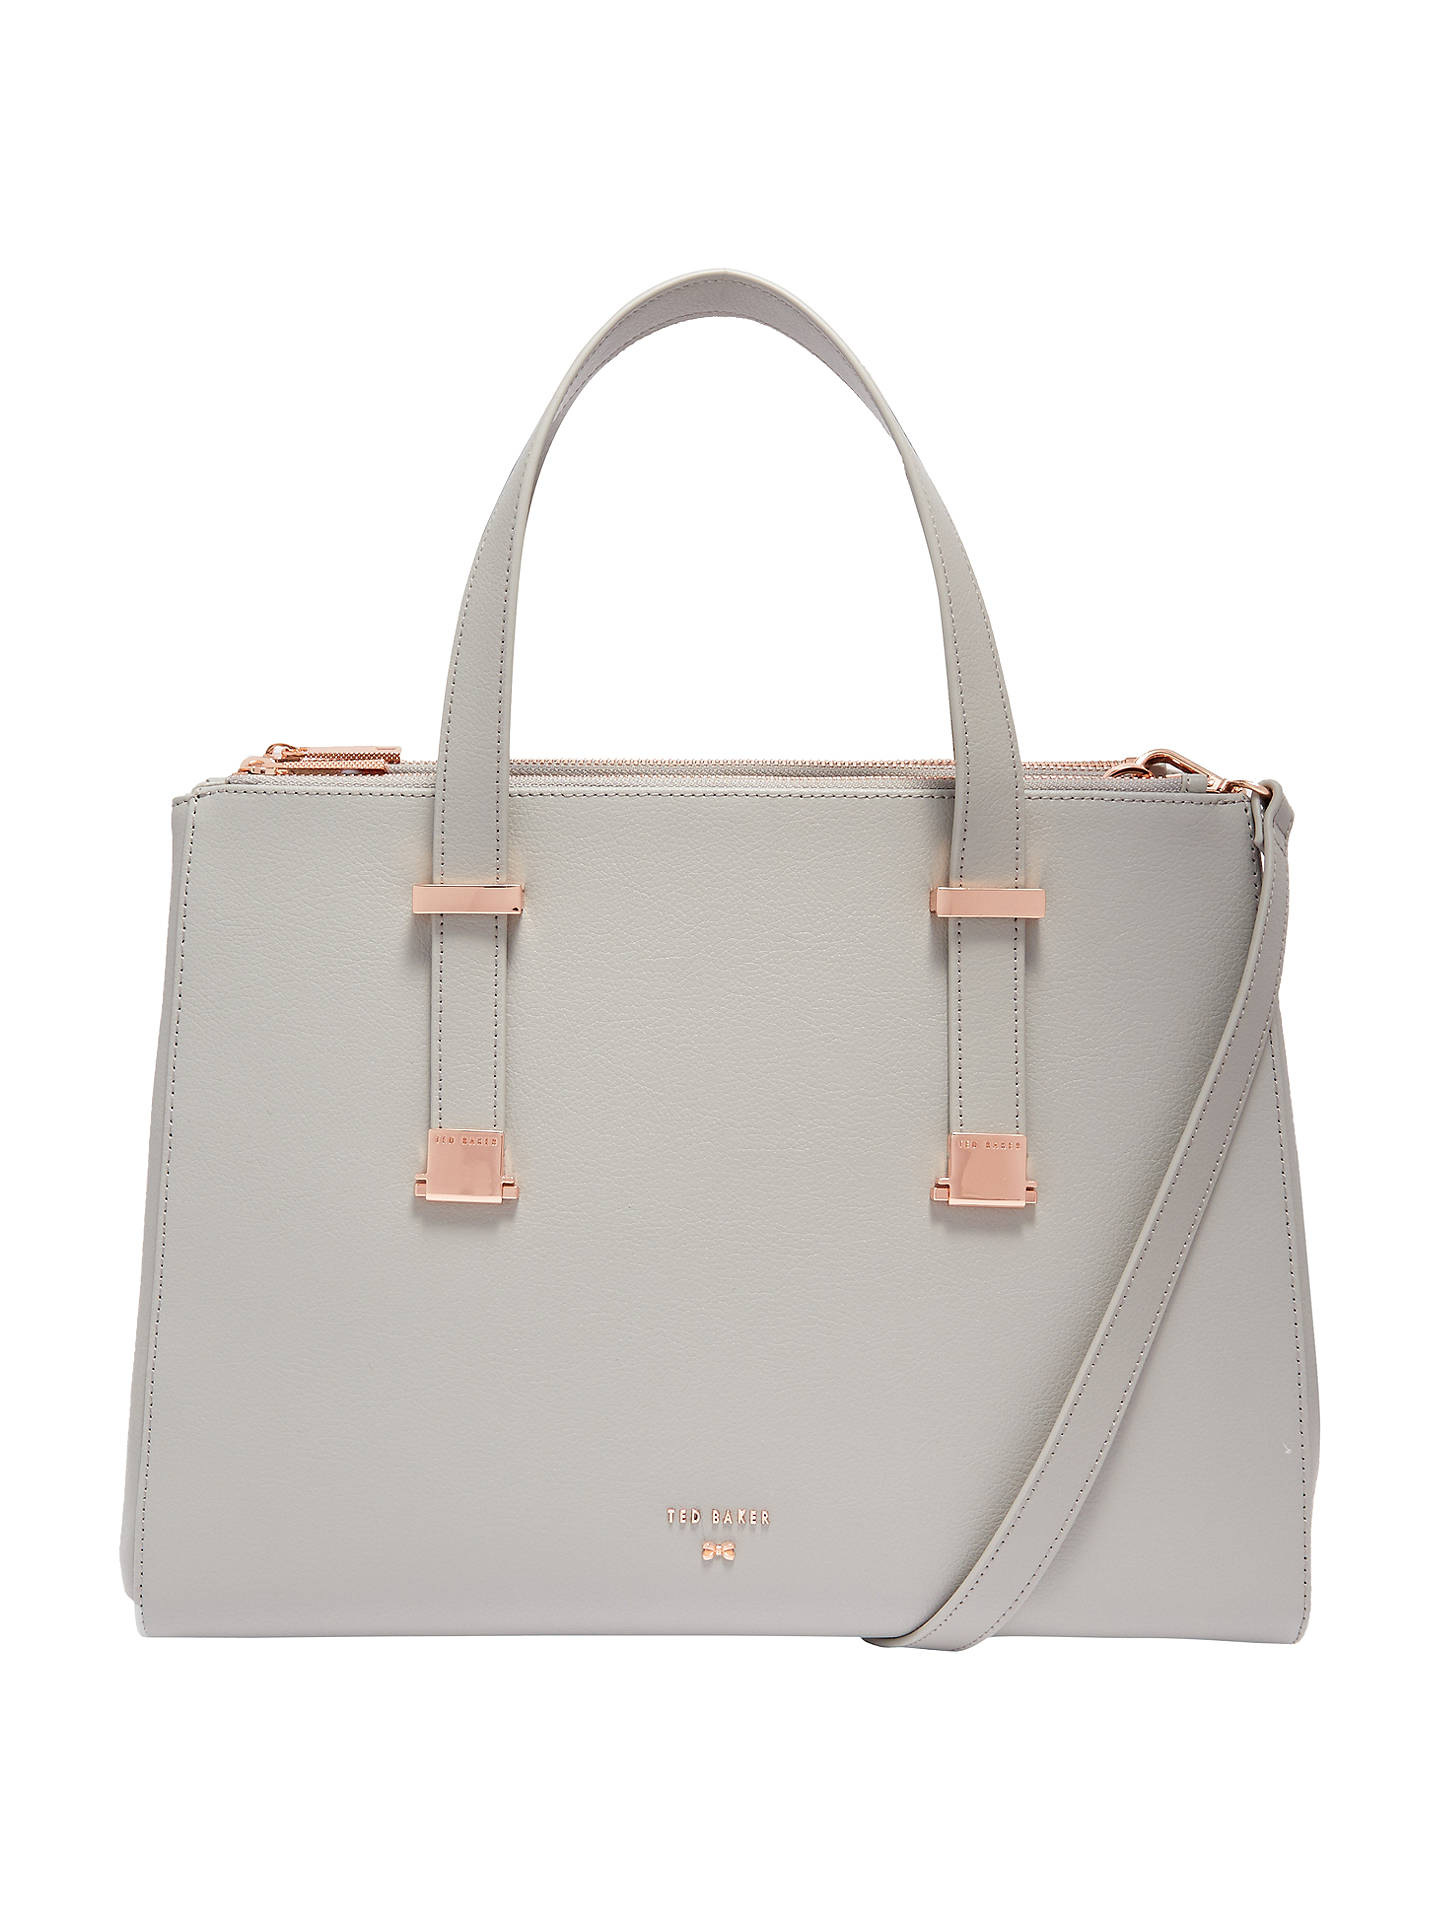 9bcb8f2e43c Buy Ted Baker Aminaa Large Leather Tote Bag, Mid Grey Online at  johnlewis.com ...